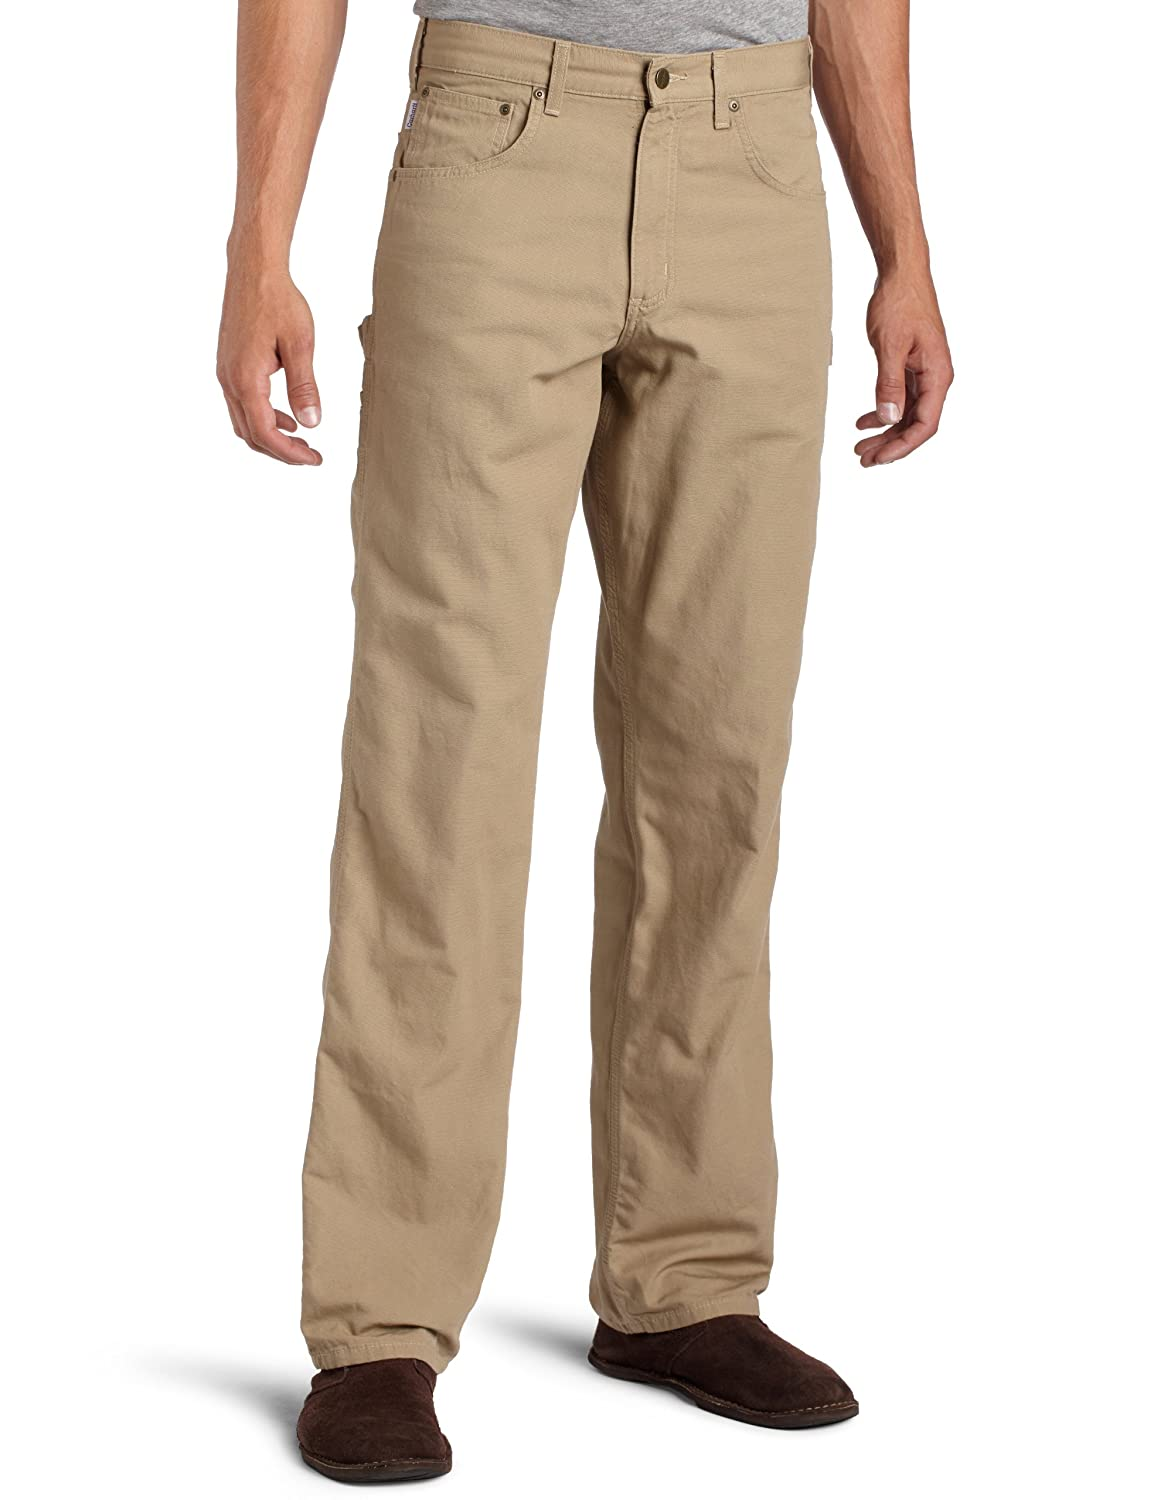 Carhartt mens Loose Fit Five Pocket Canvas Carpenter Pant B159